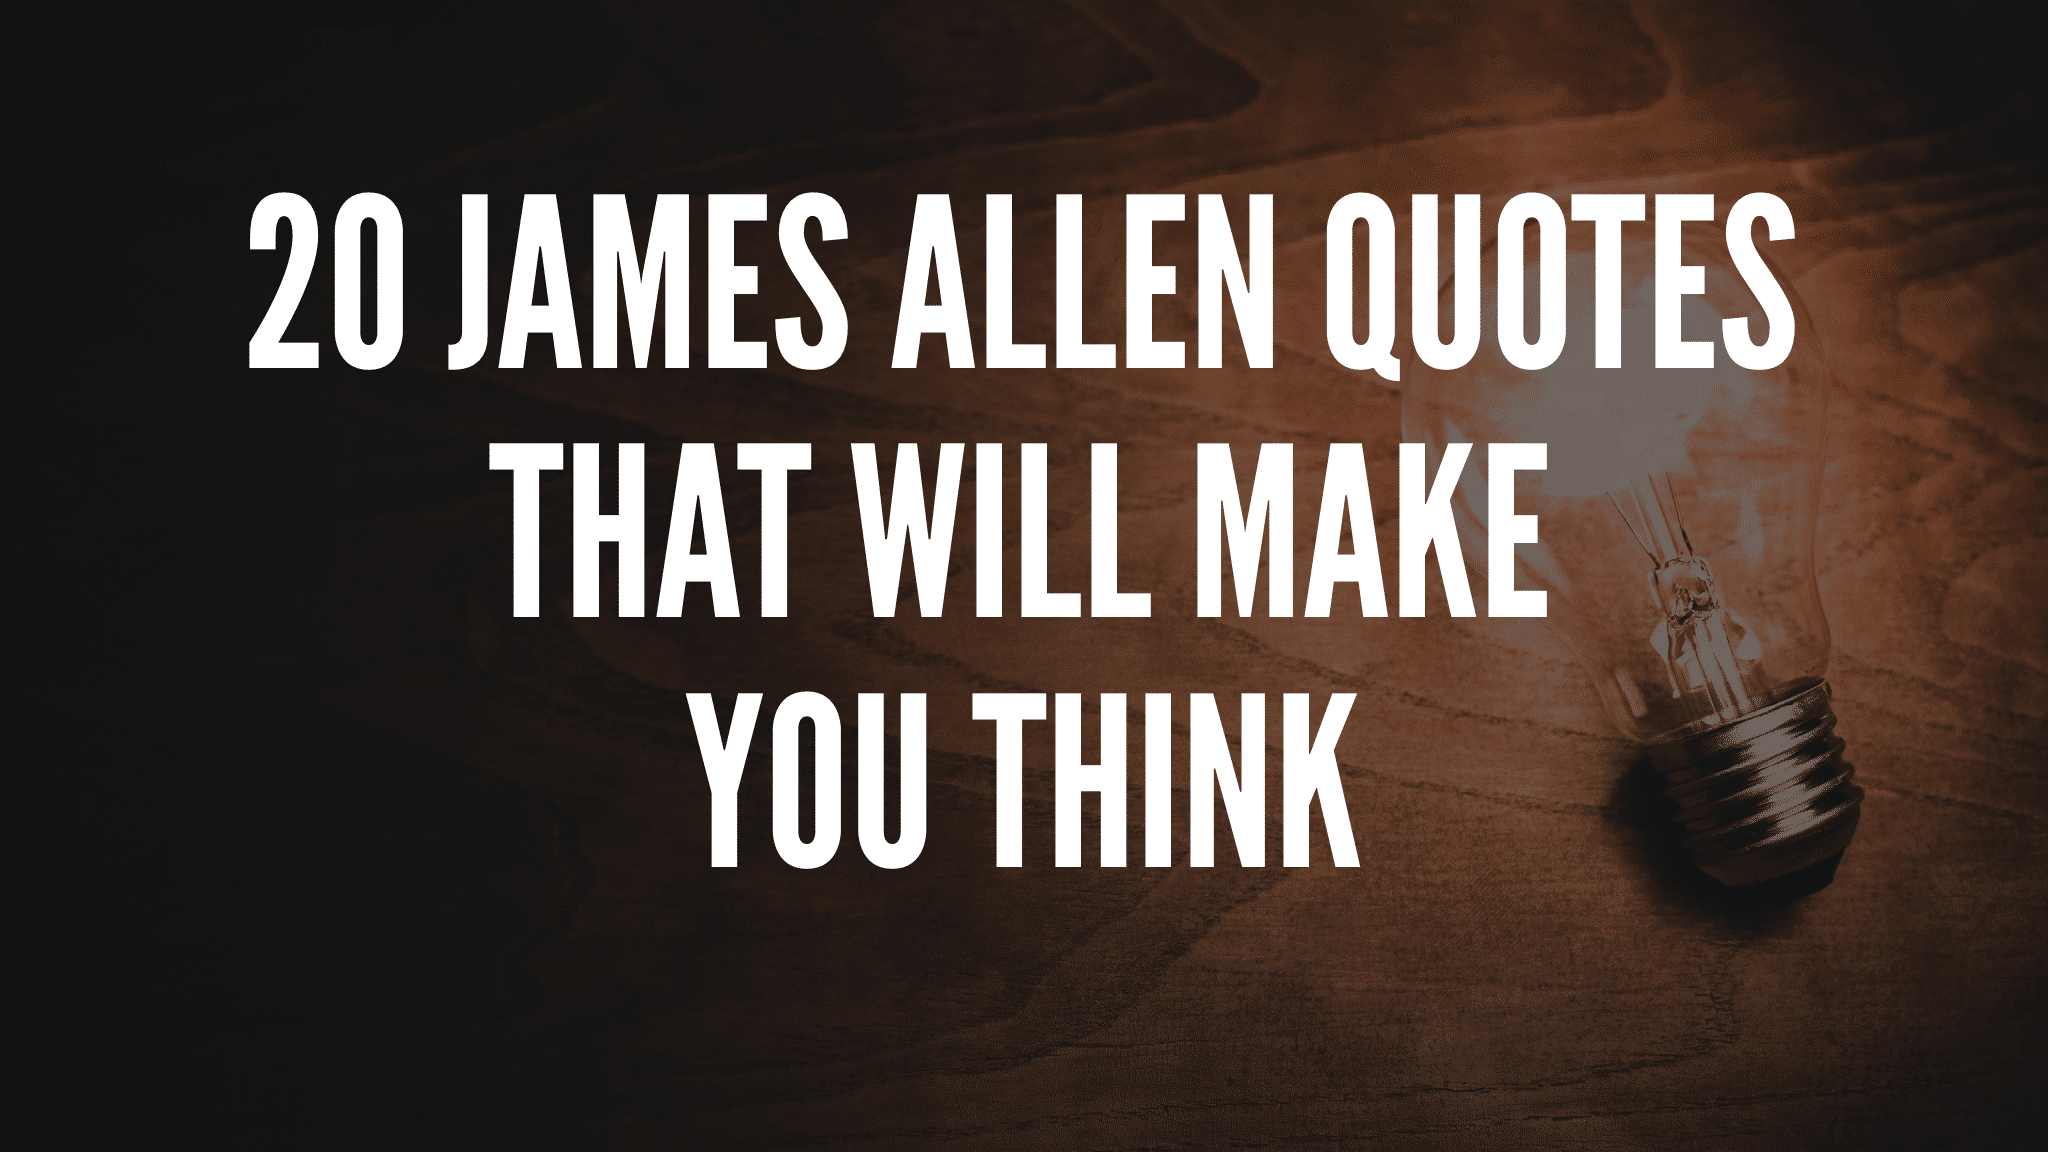 20 James Allen Quotes That Will Make You Think